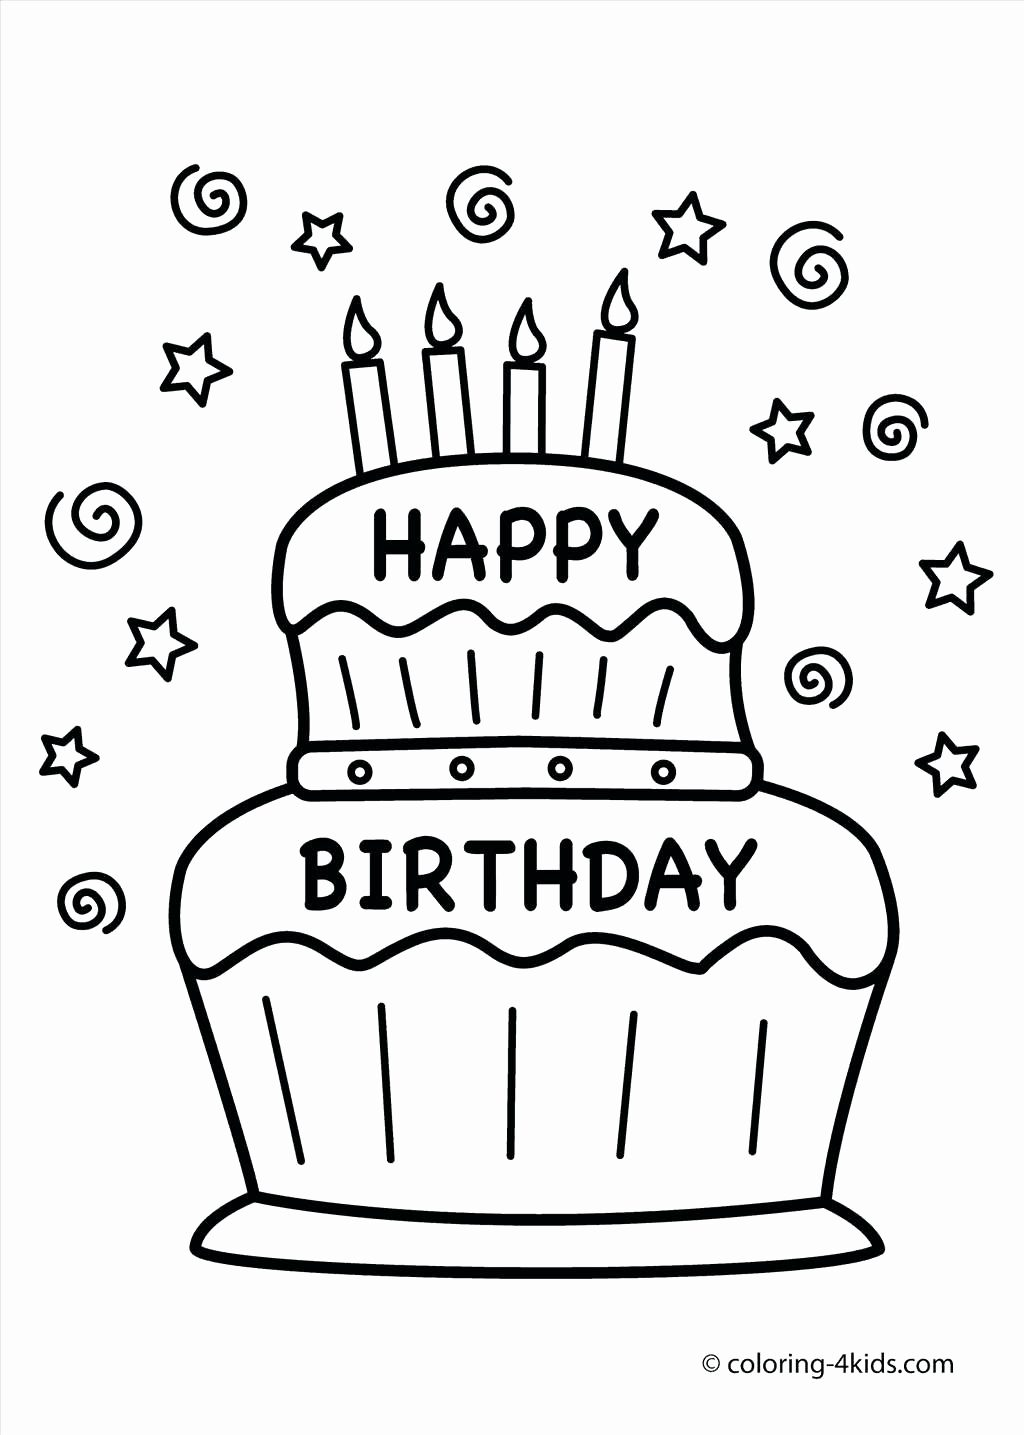 free birthday coloring pages to print ; printable-birthday-coloring-pages-example-cake-page-free-of-astonishing-picture-1024x1435